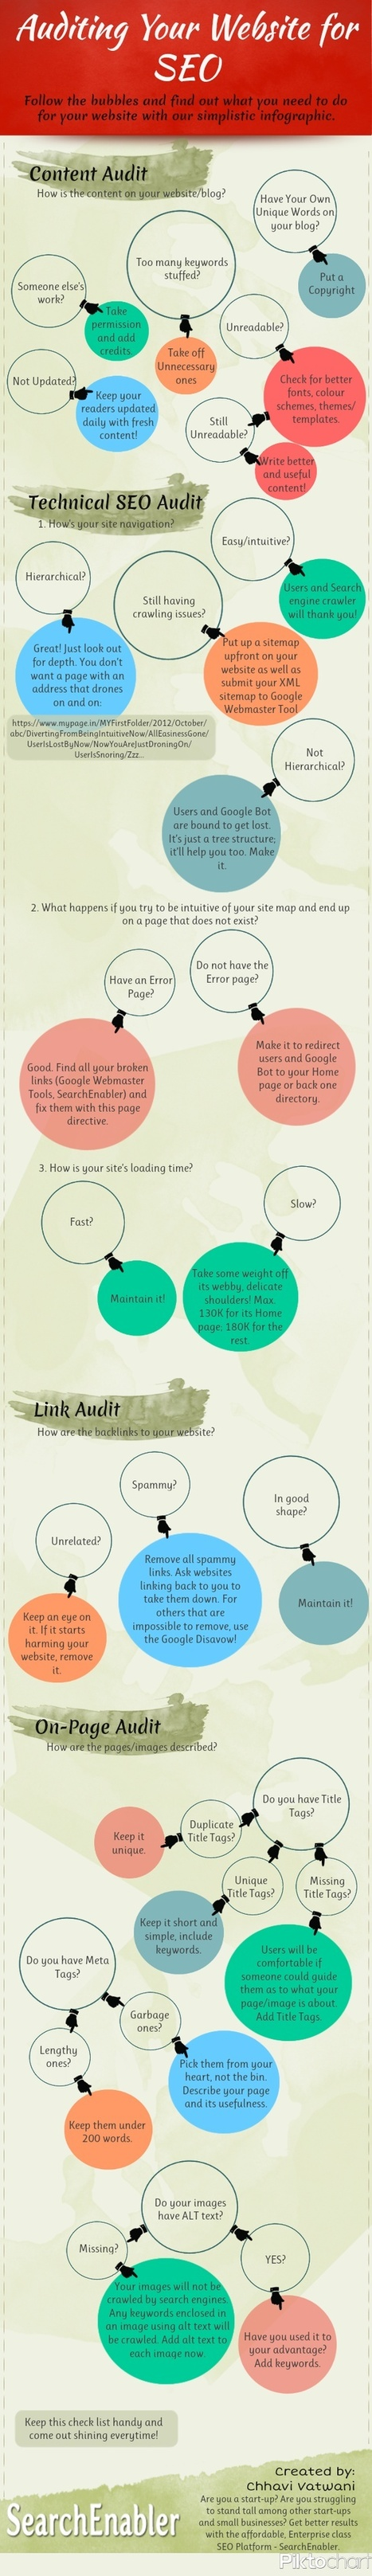 How to #SEO Audit your Website [INFOGRAPHIC] | SEO, SEM & Social Media NEWS | Scoop.it